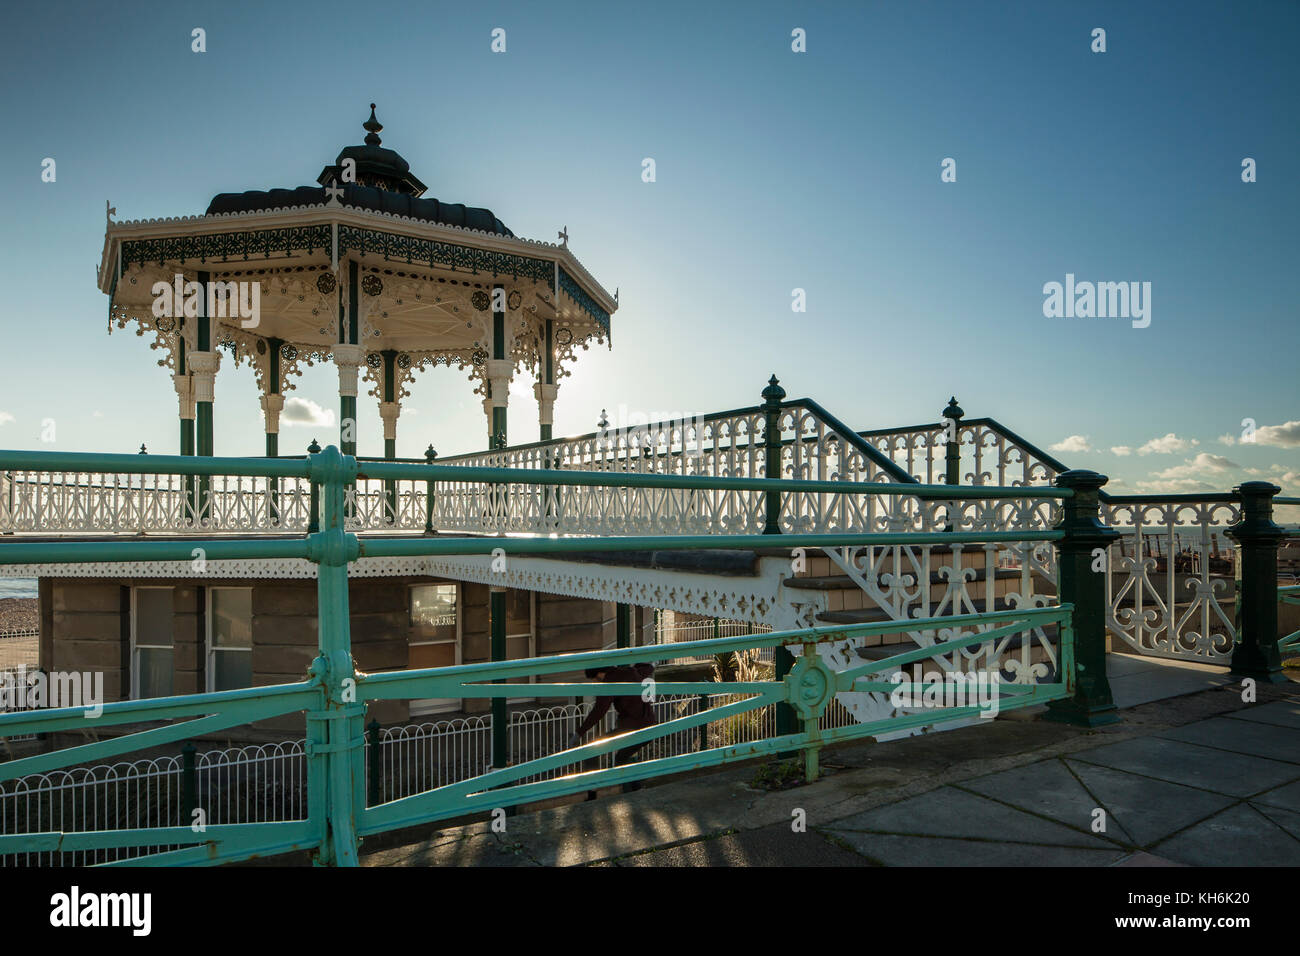 Victorian bandstand in Brighton, East Sussex, England. - Stock Image